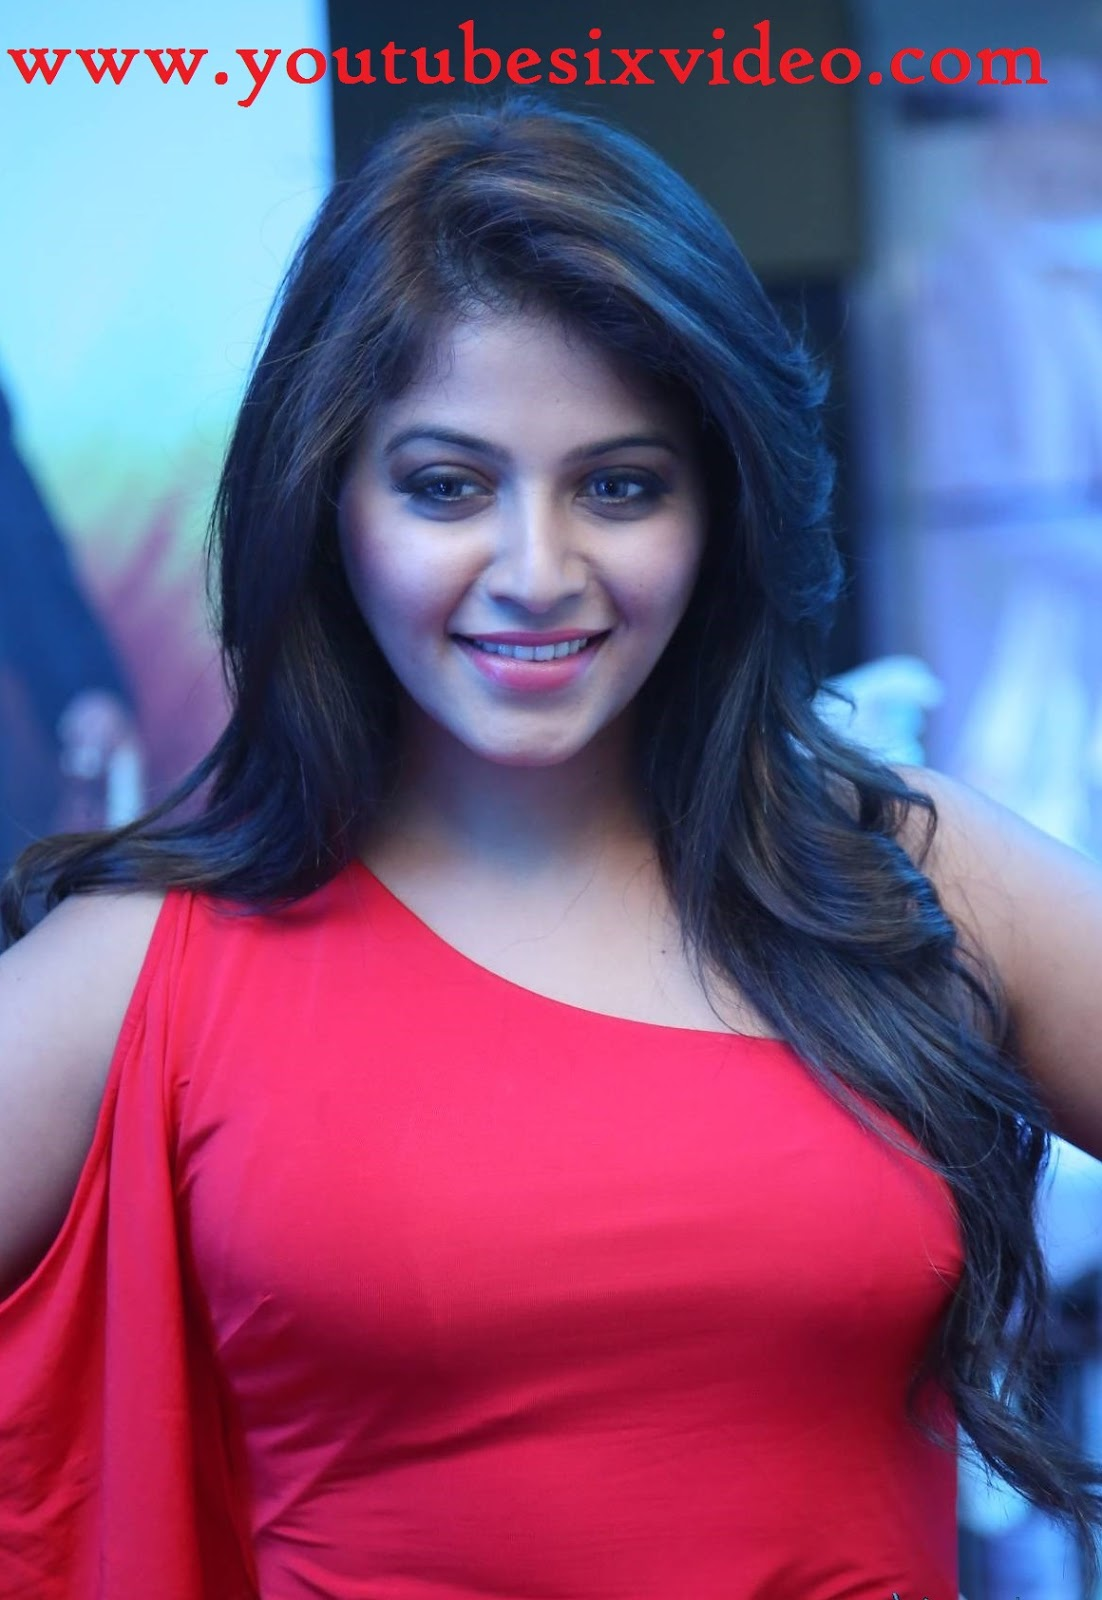 beautiful pic : actress anjali spicy in red dress - youtube six video